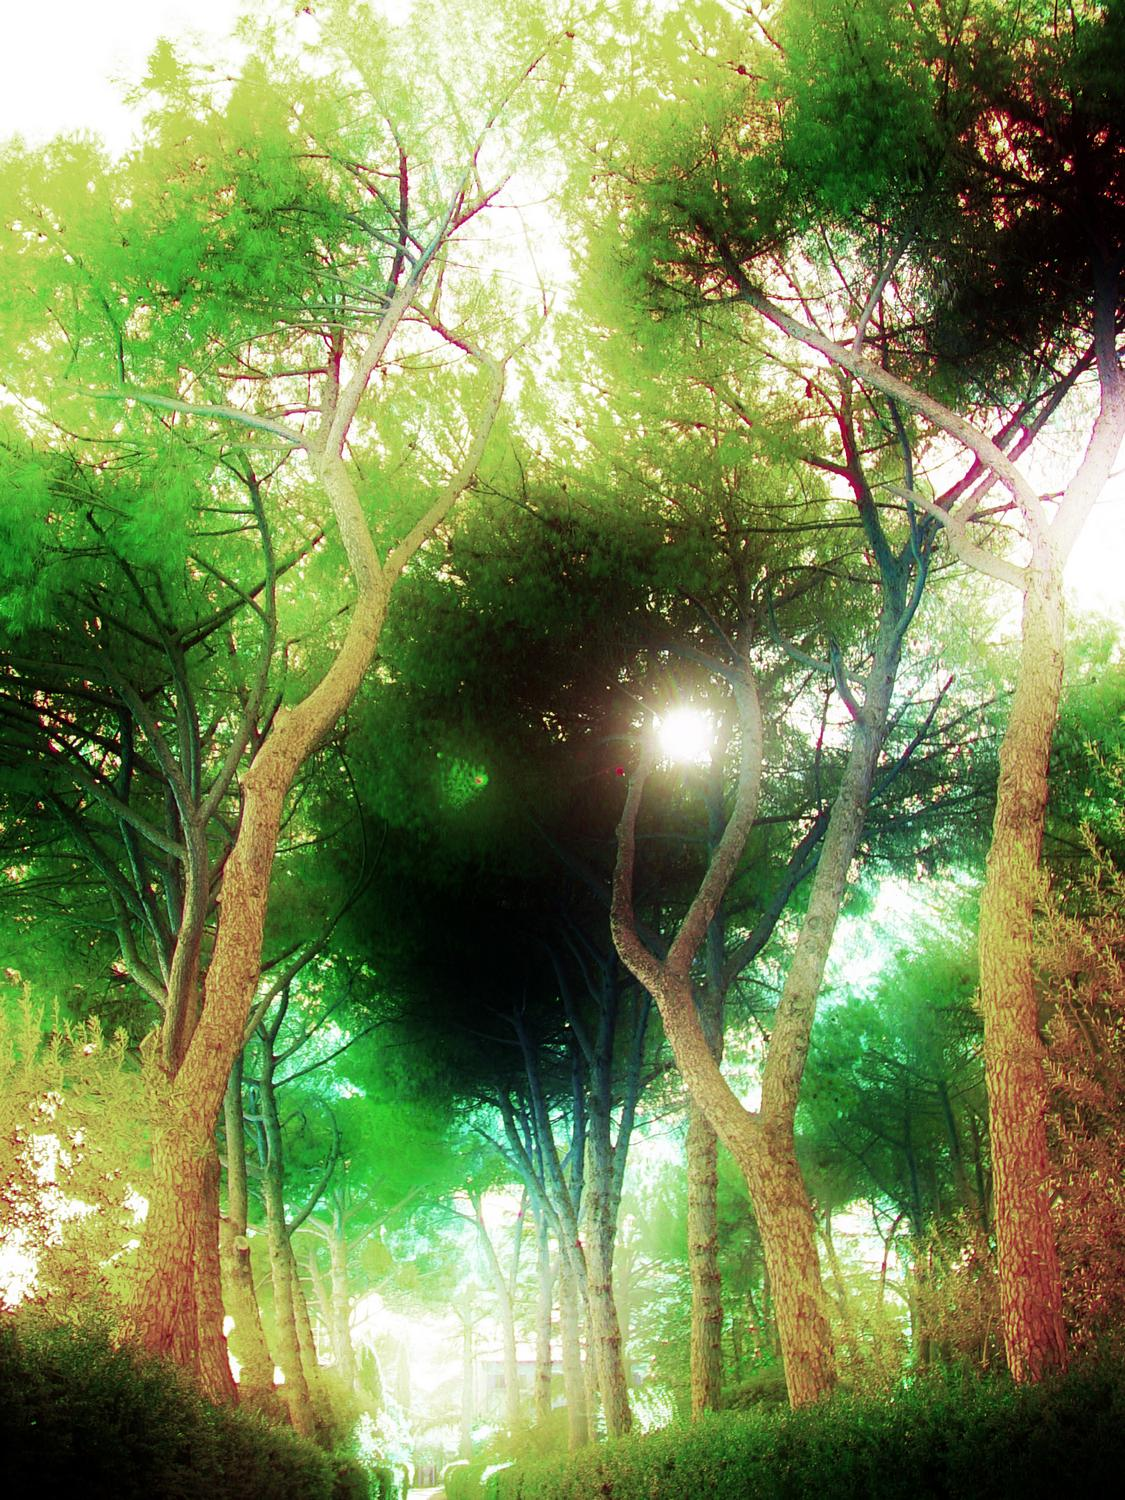 - A fantasy scene of light and trees  along the Via Appia Antica - A trip to Rome - by Tony Karp - Rome - Vatican - Gubbio - Viterbo - Spoleto - - - art  - photography - by Tony Karp